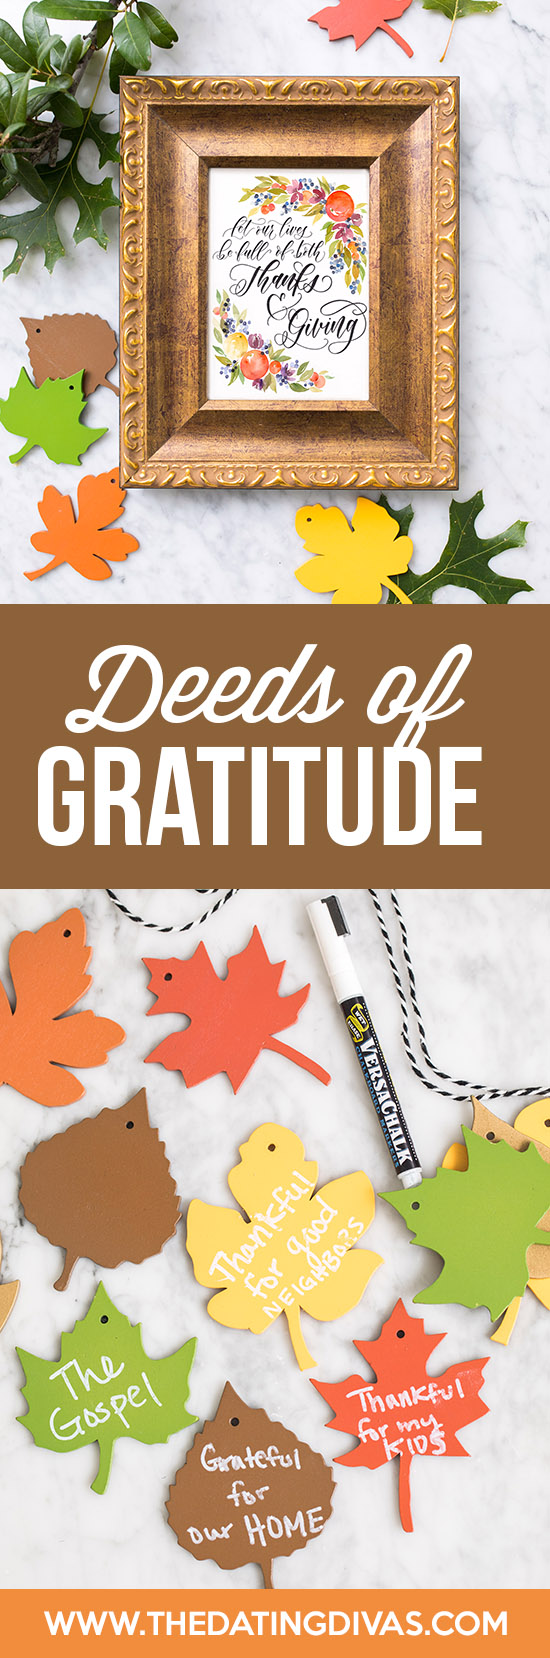 Deeds of Gratitude Thanksgiving Countdown Tradition